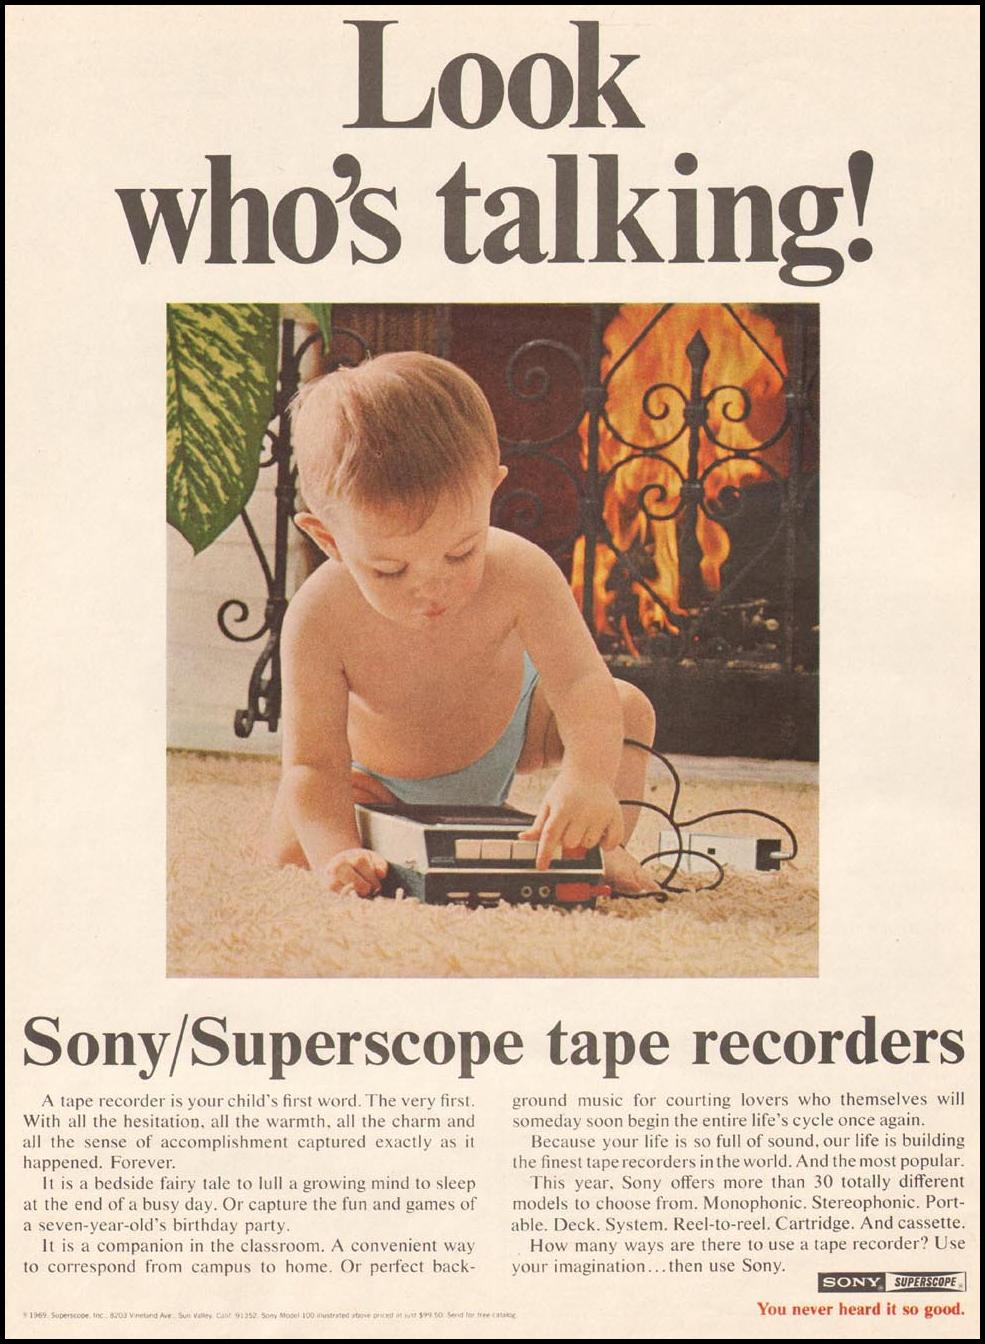 SONY SUPERSCOPE TAPE RECORDERS SATURDAY EVENING POST 02/08/1969 p. 2